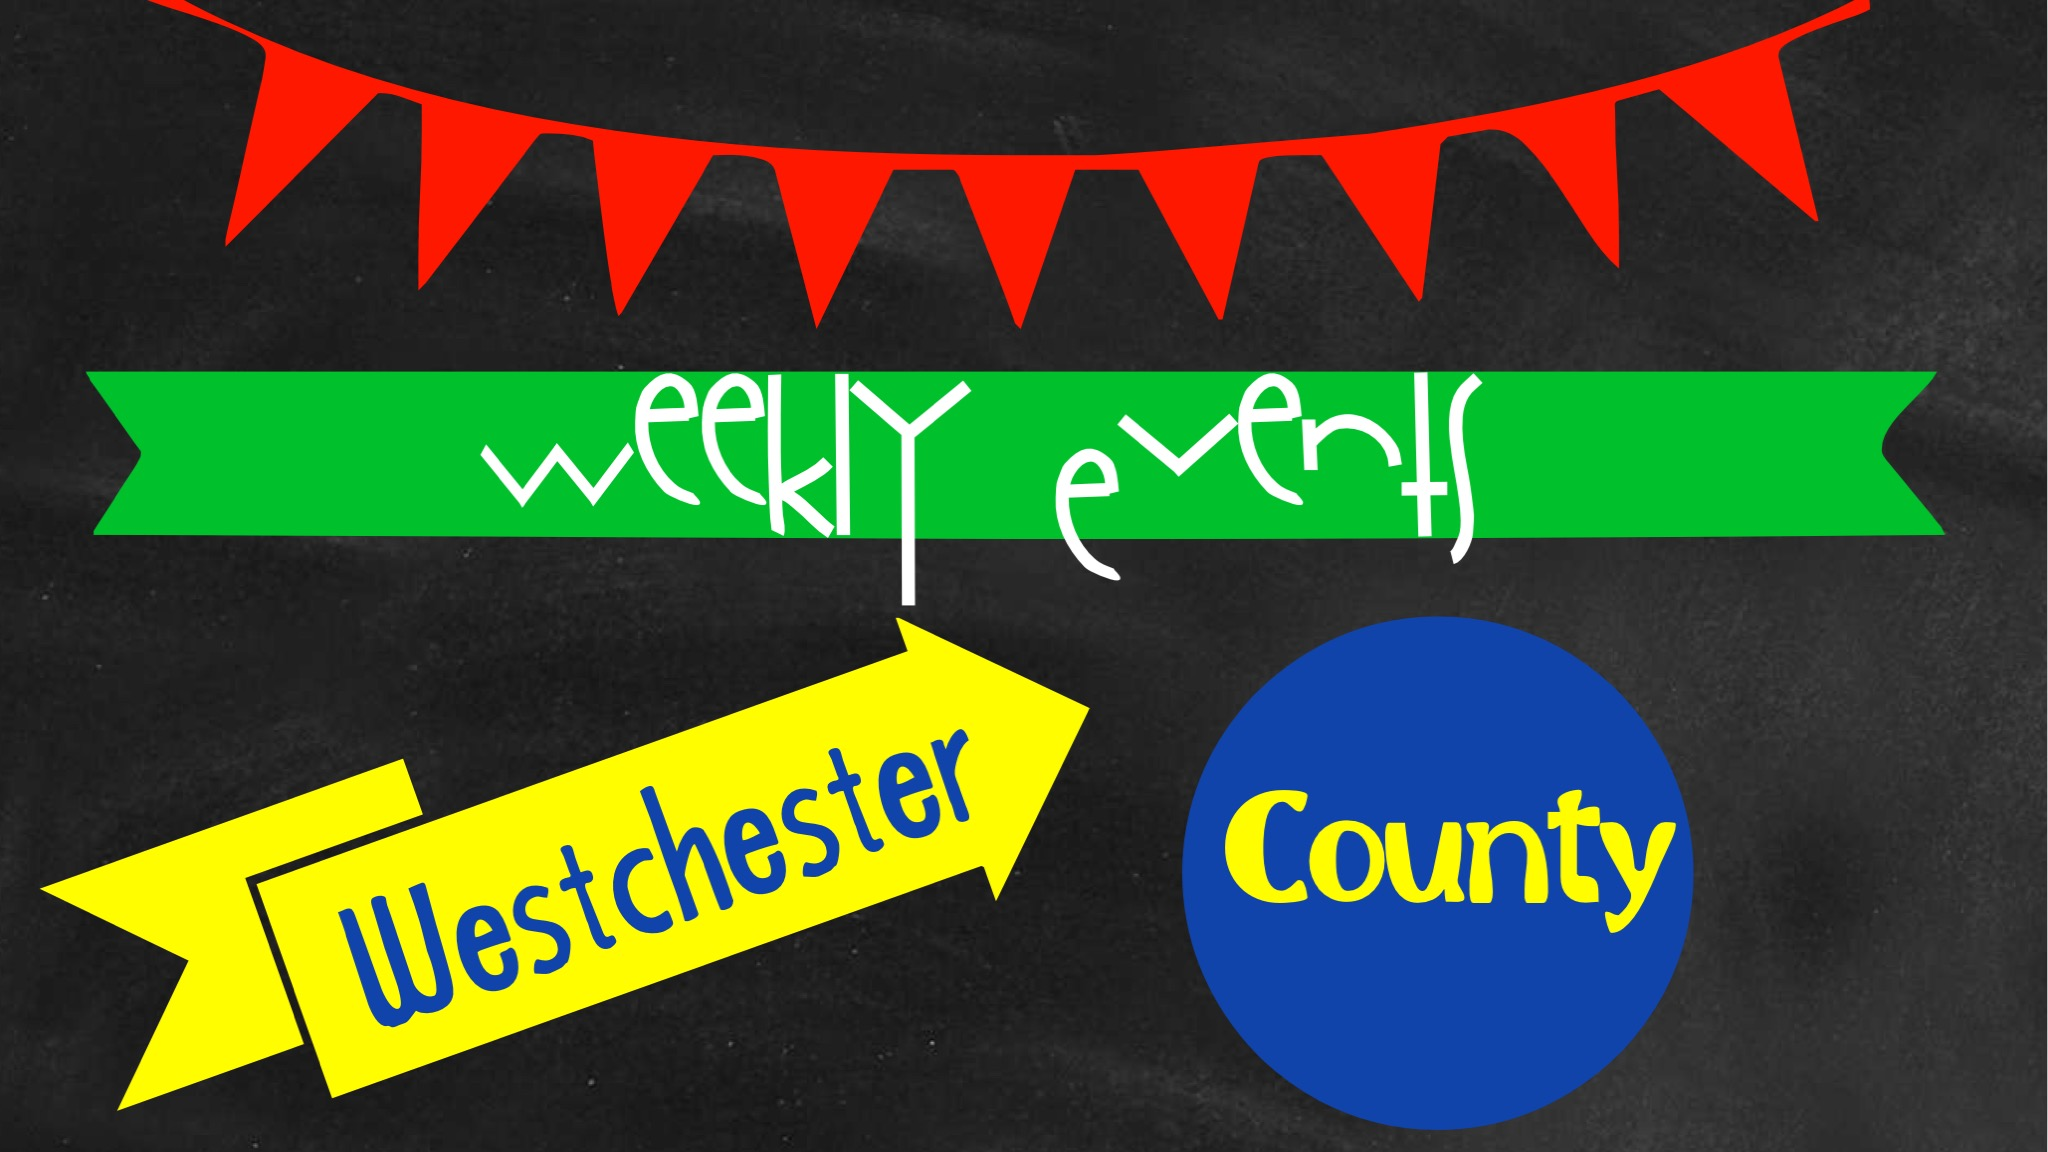 Westchester County Weekend Events 12/19-12/21